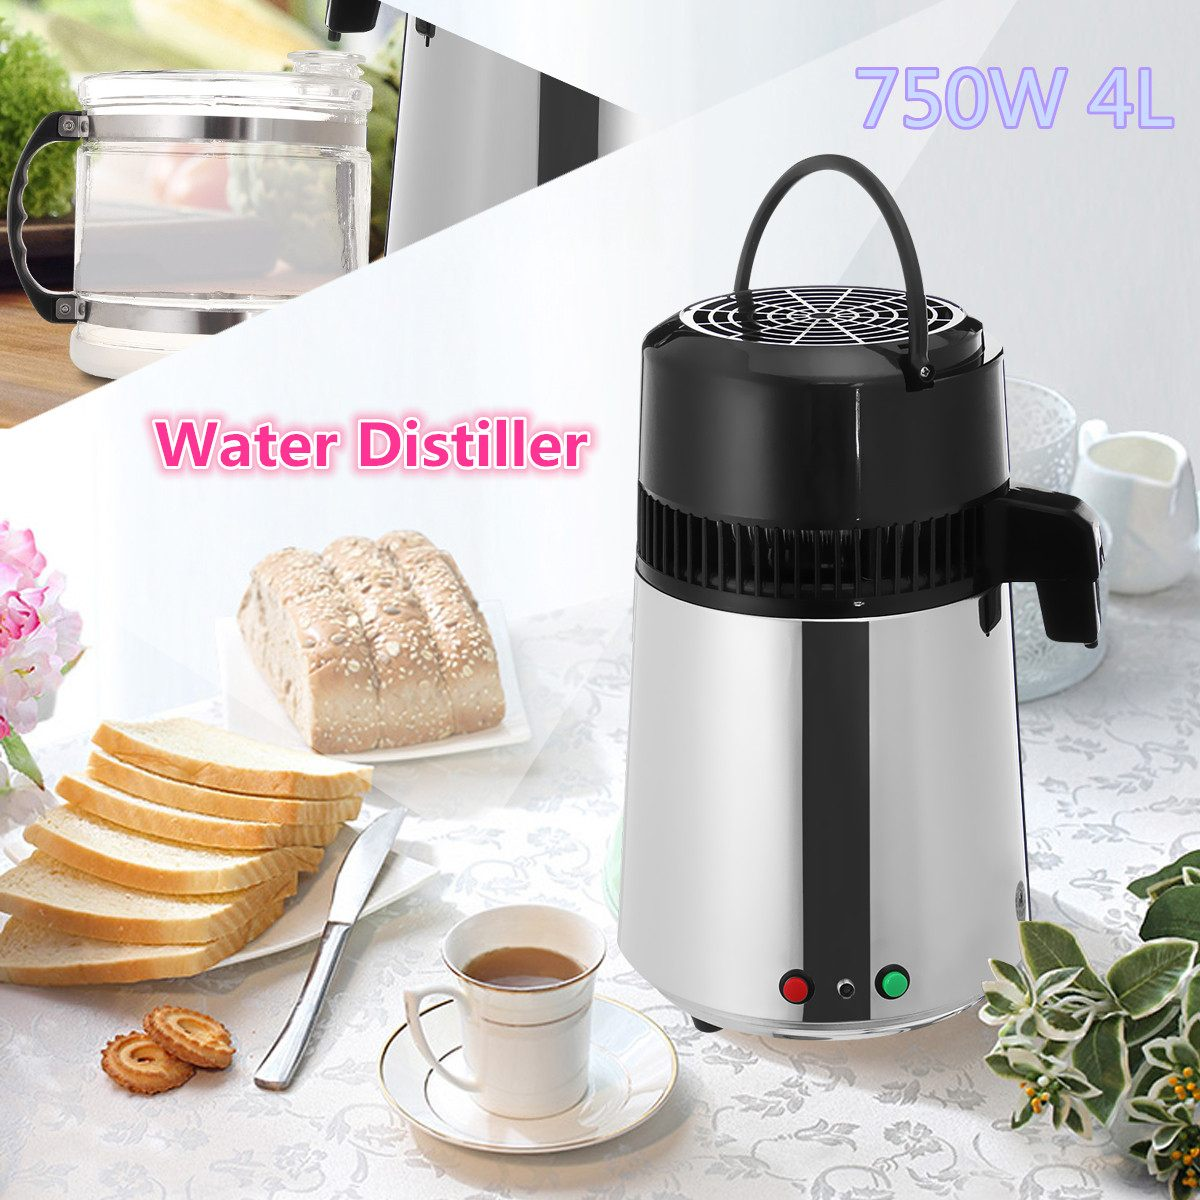 4L 750W Pure Distiller Distilled Water Machine Household Stainless Steel Water Purifier Container Filter Distilled Water Machine|Water Filters| - AliExpress